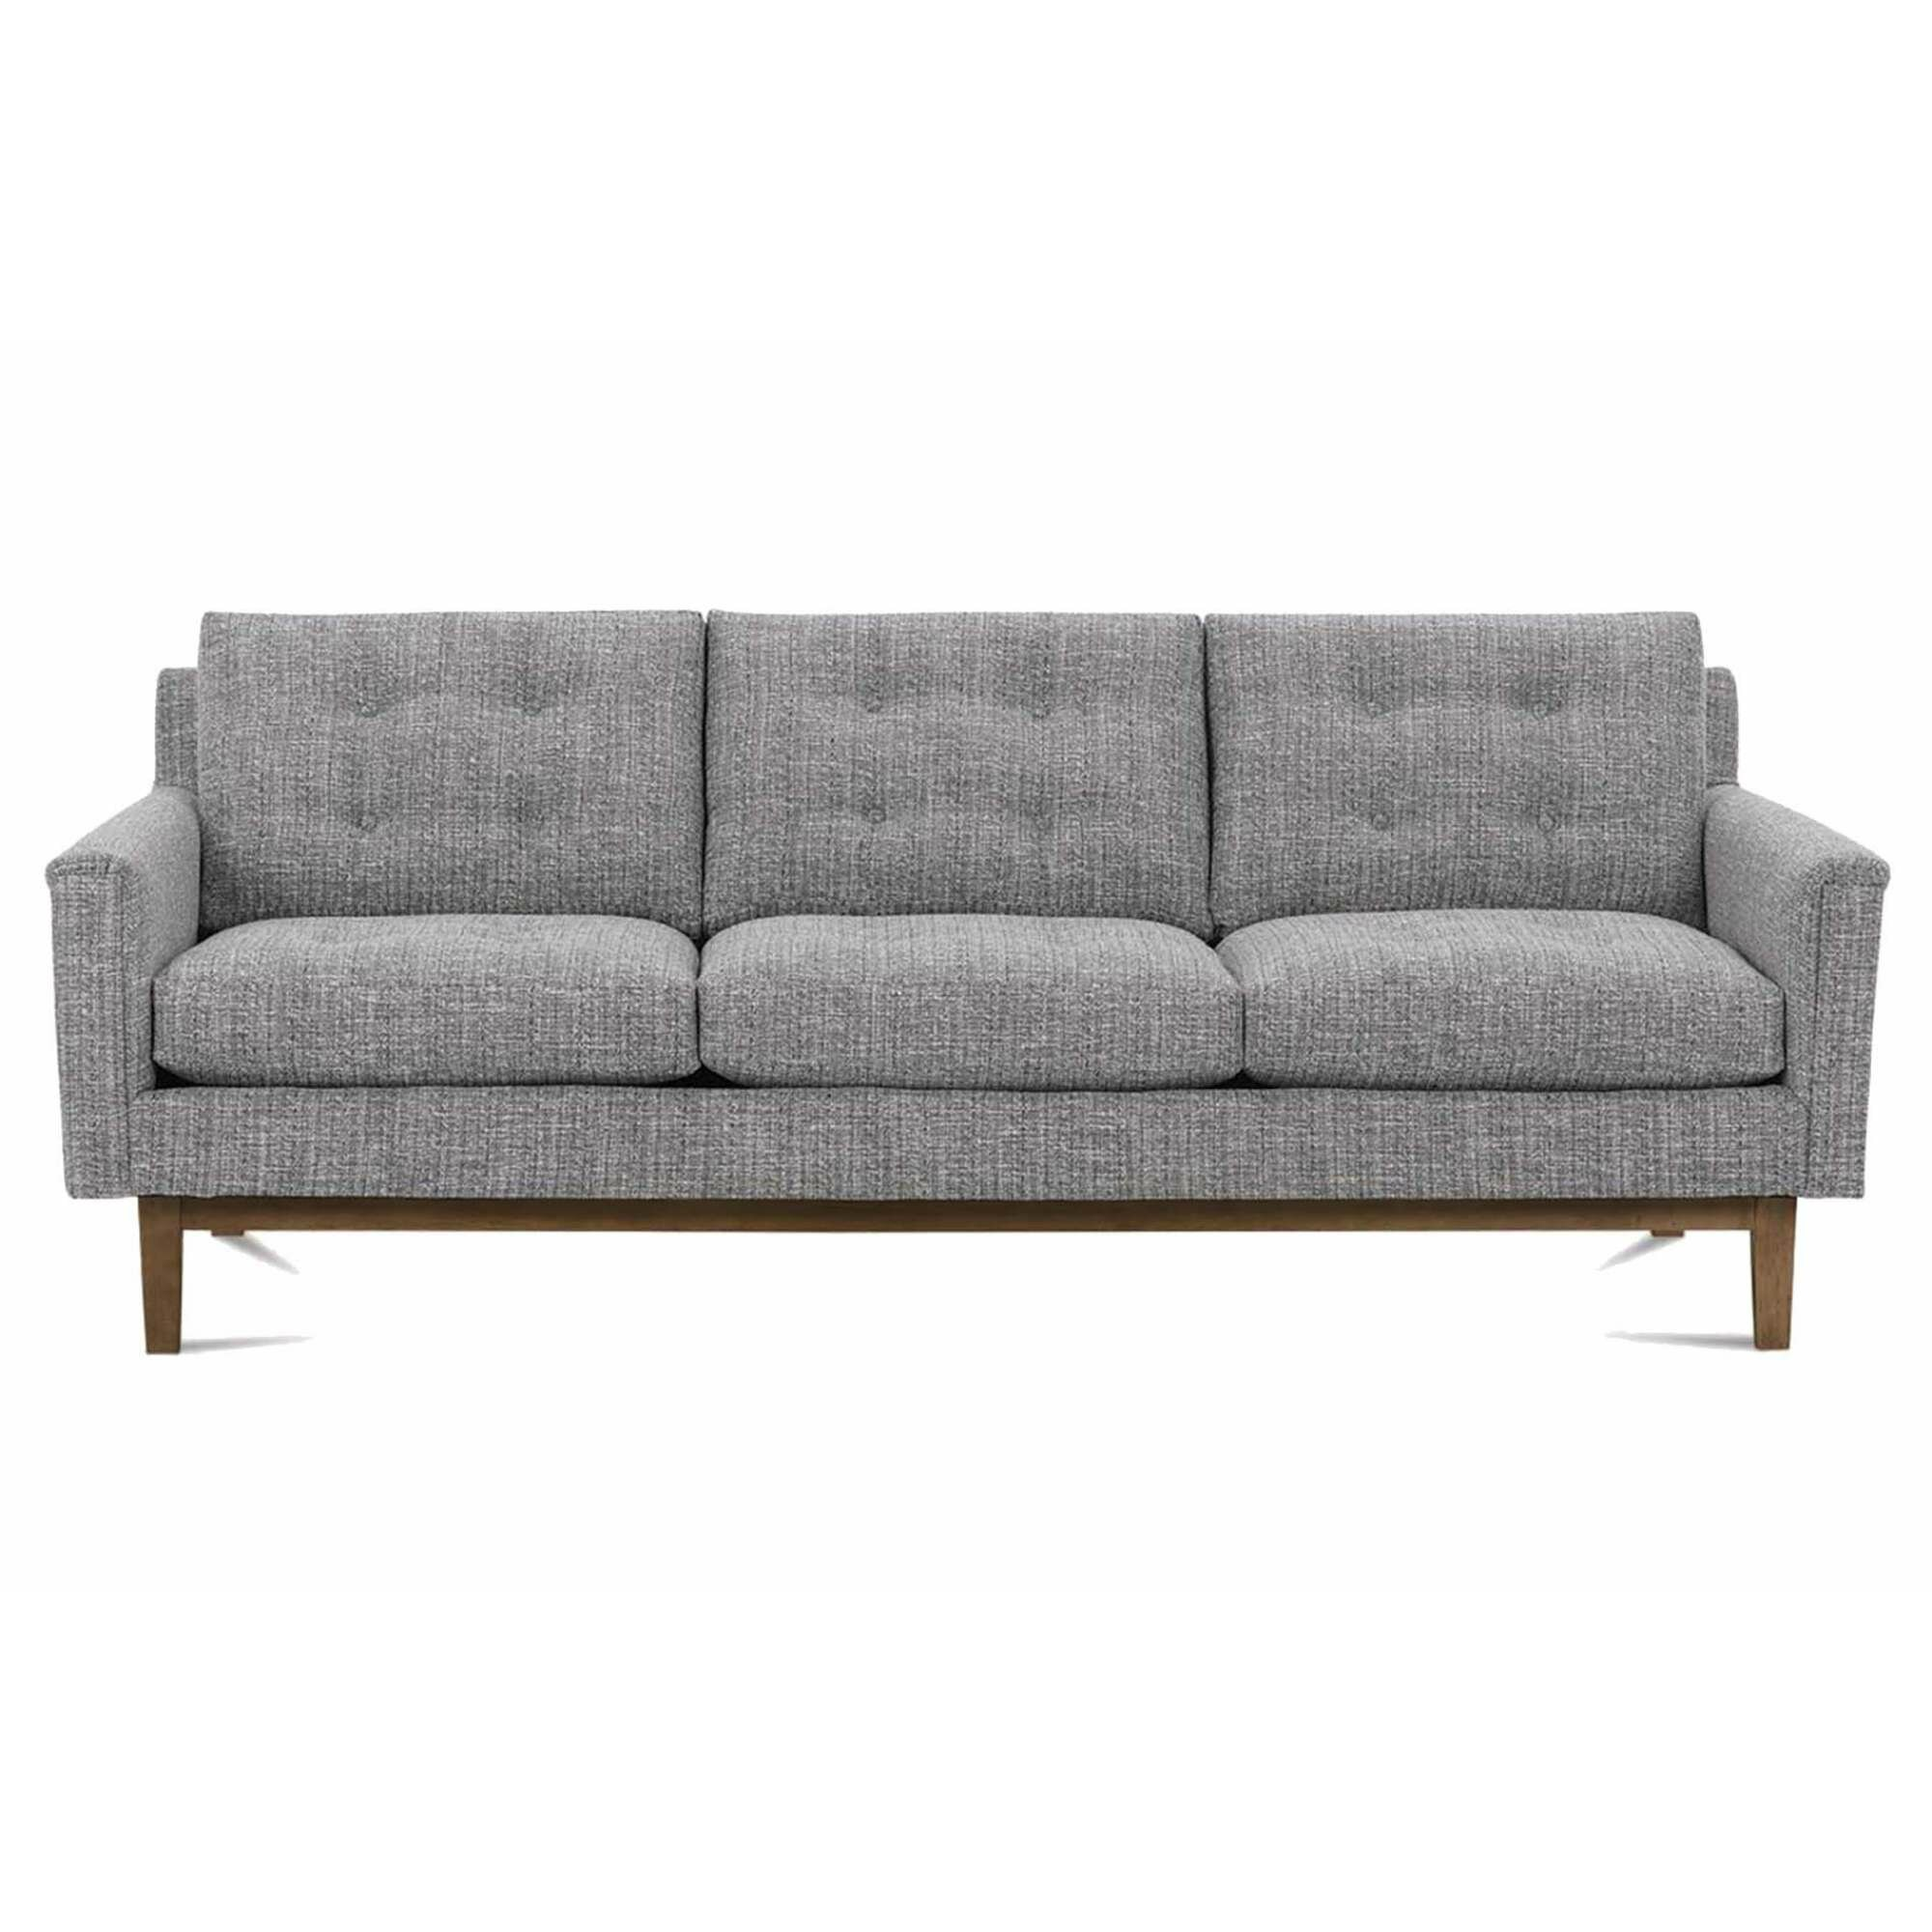 Rowe Furniture Ethan Sofa Reviews